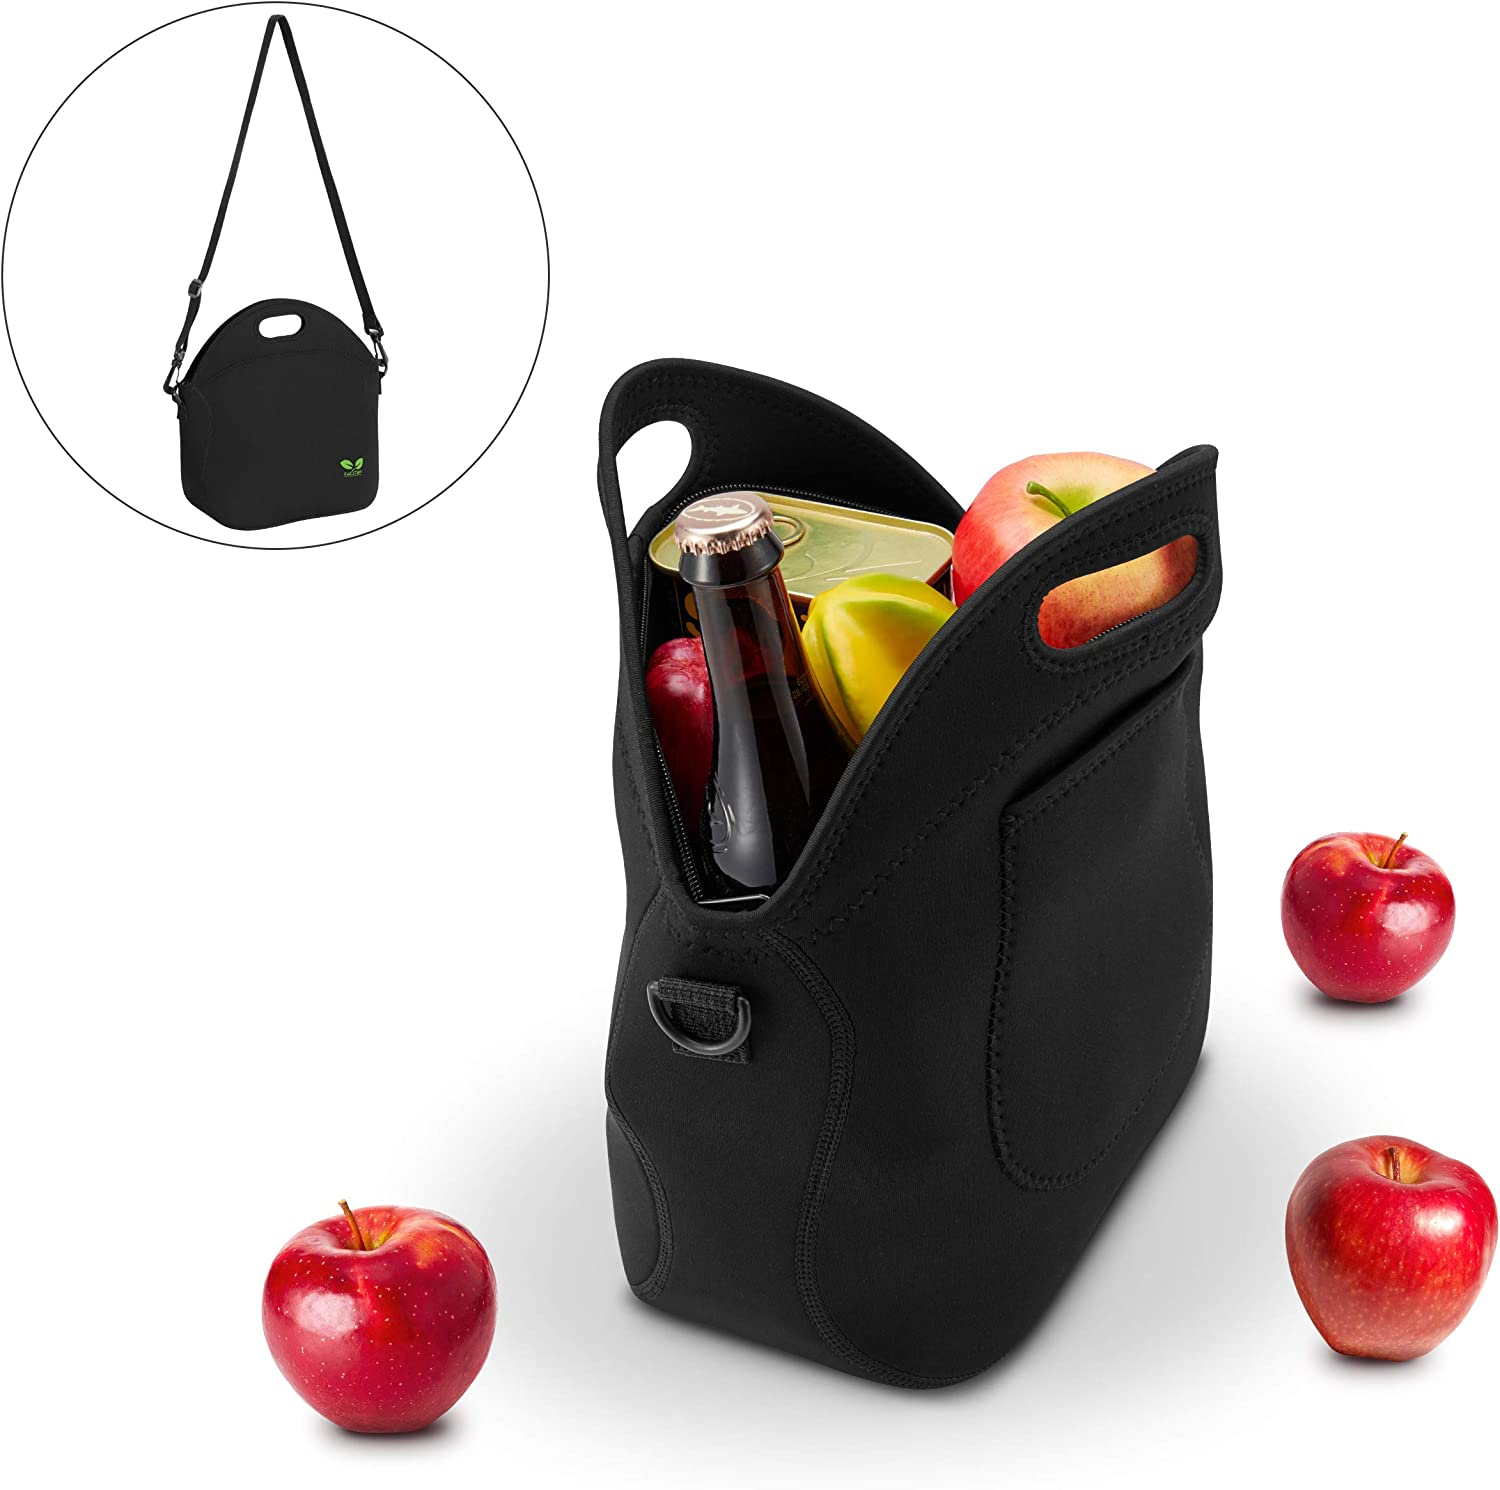 Free Amazon Promo Code 2020 for Neoprene Lunch Tote Washable Lunchbox Bag